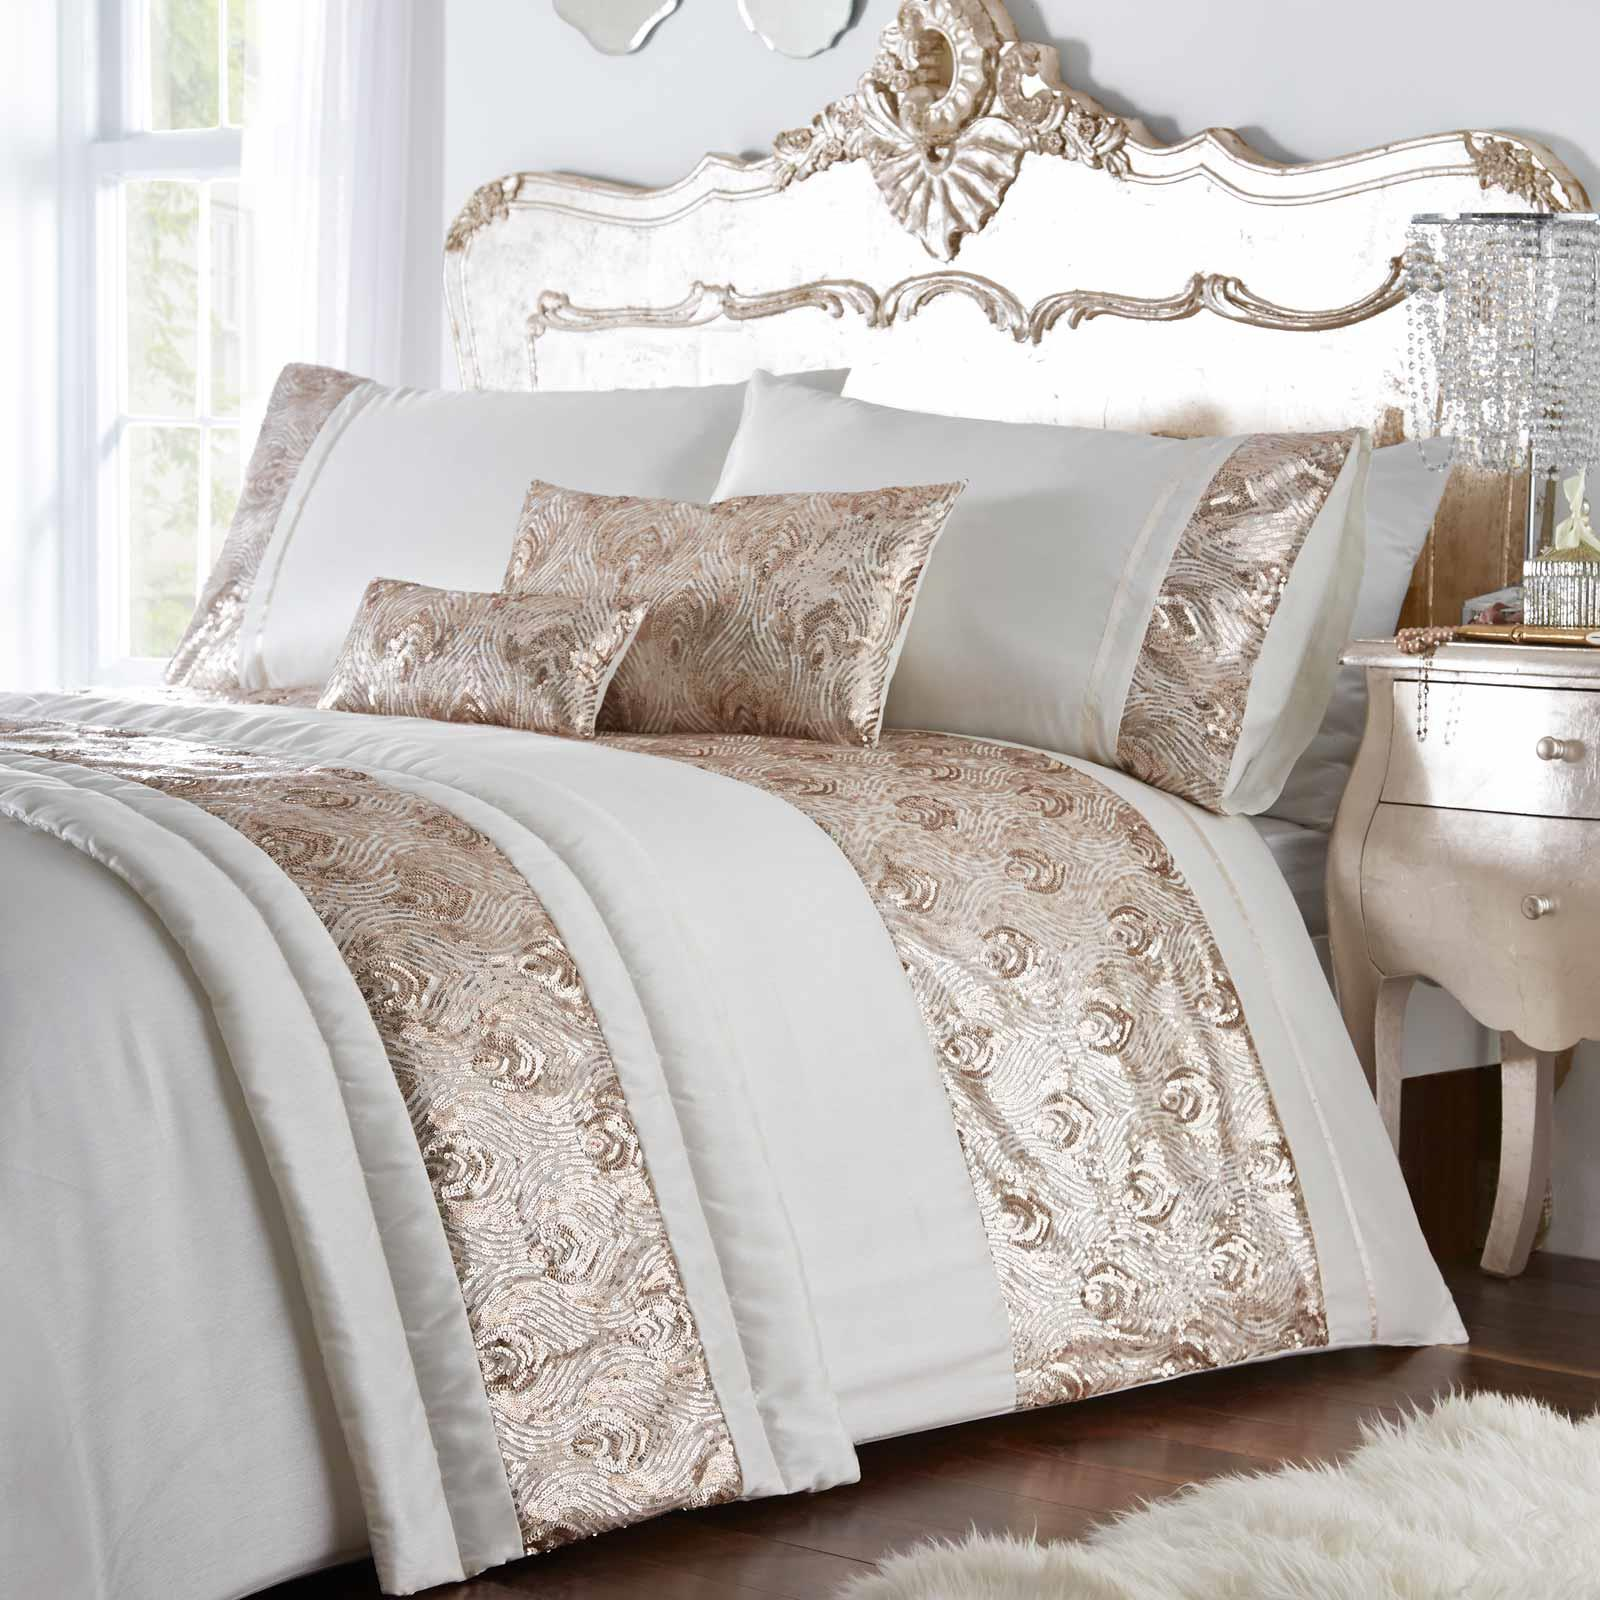 Gold Duvet Covers Cream Sequin Sparkle Glam Faux Silk Quilt Cover Bedding Sets Ebay